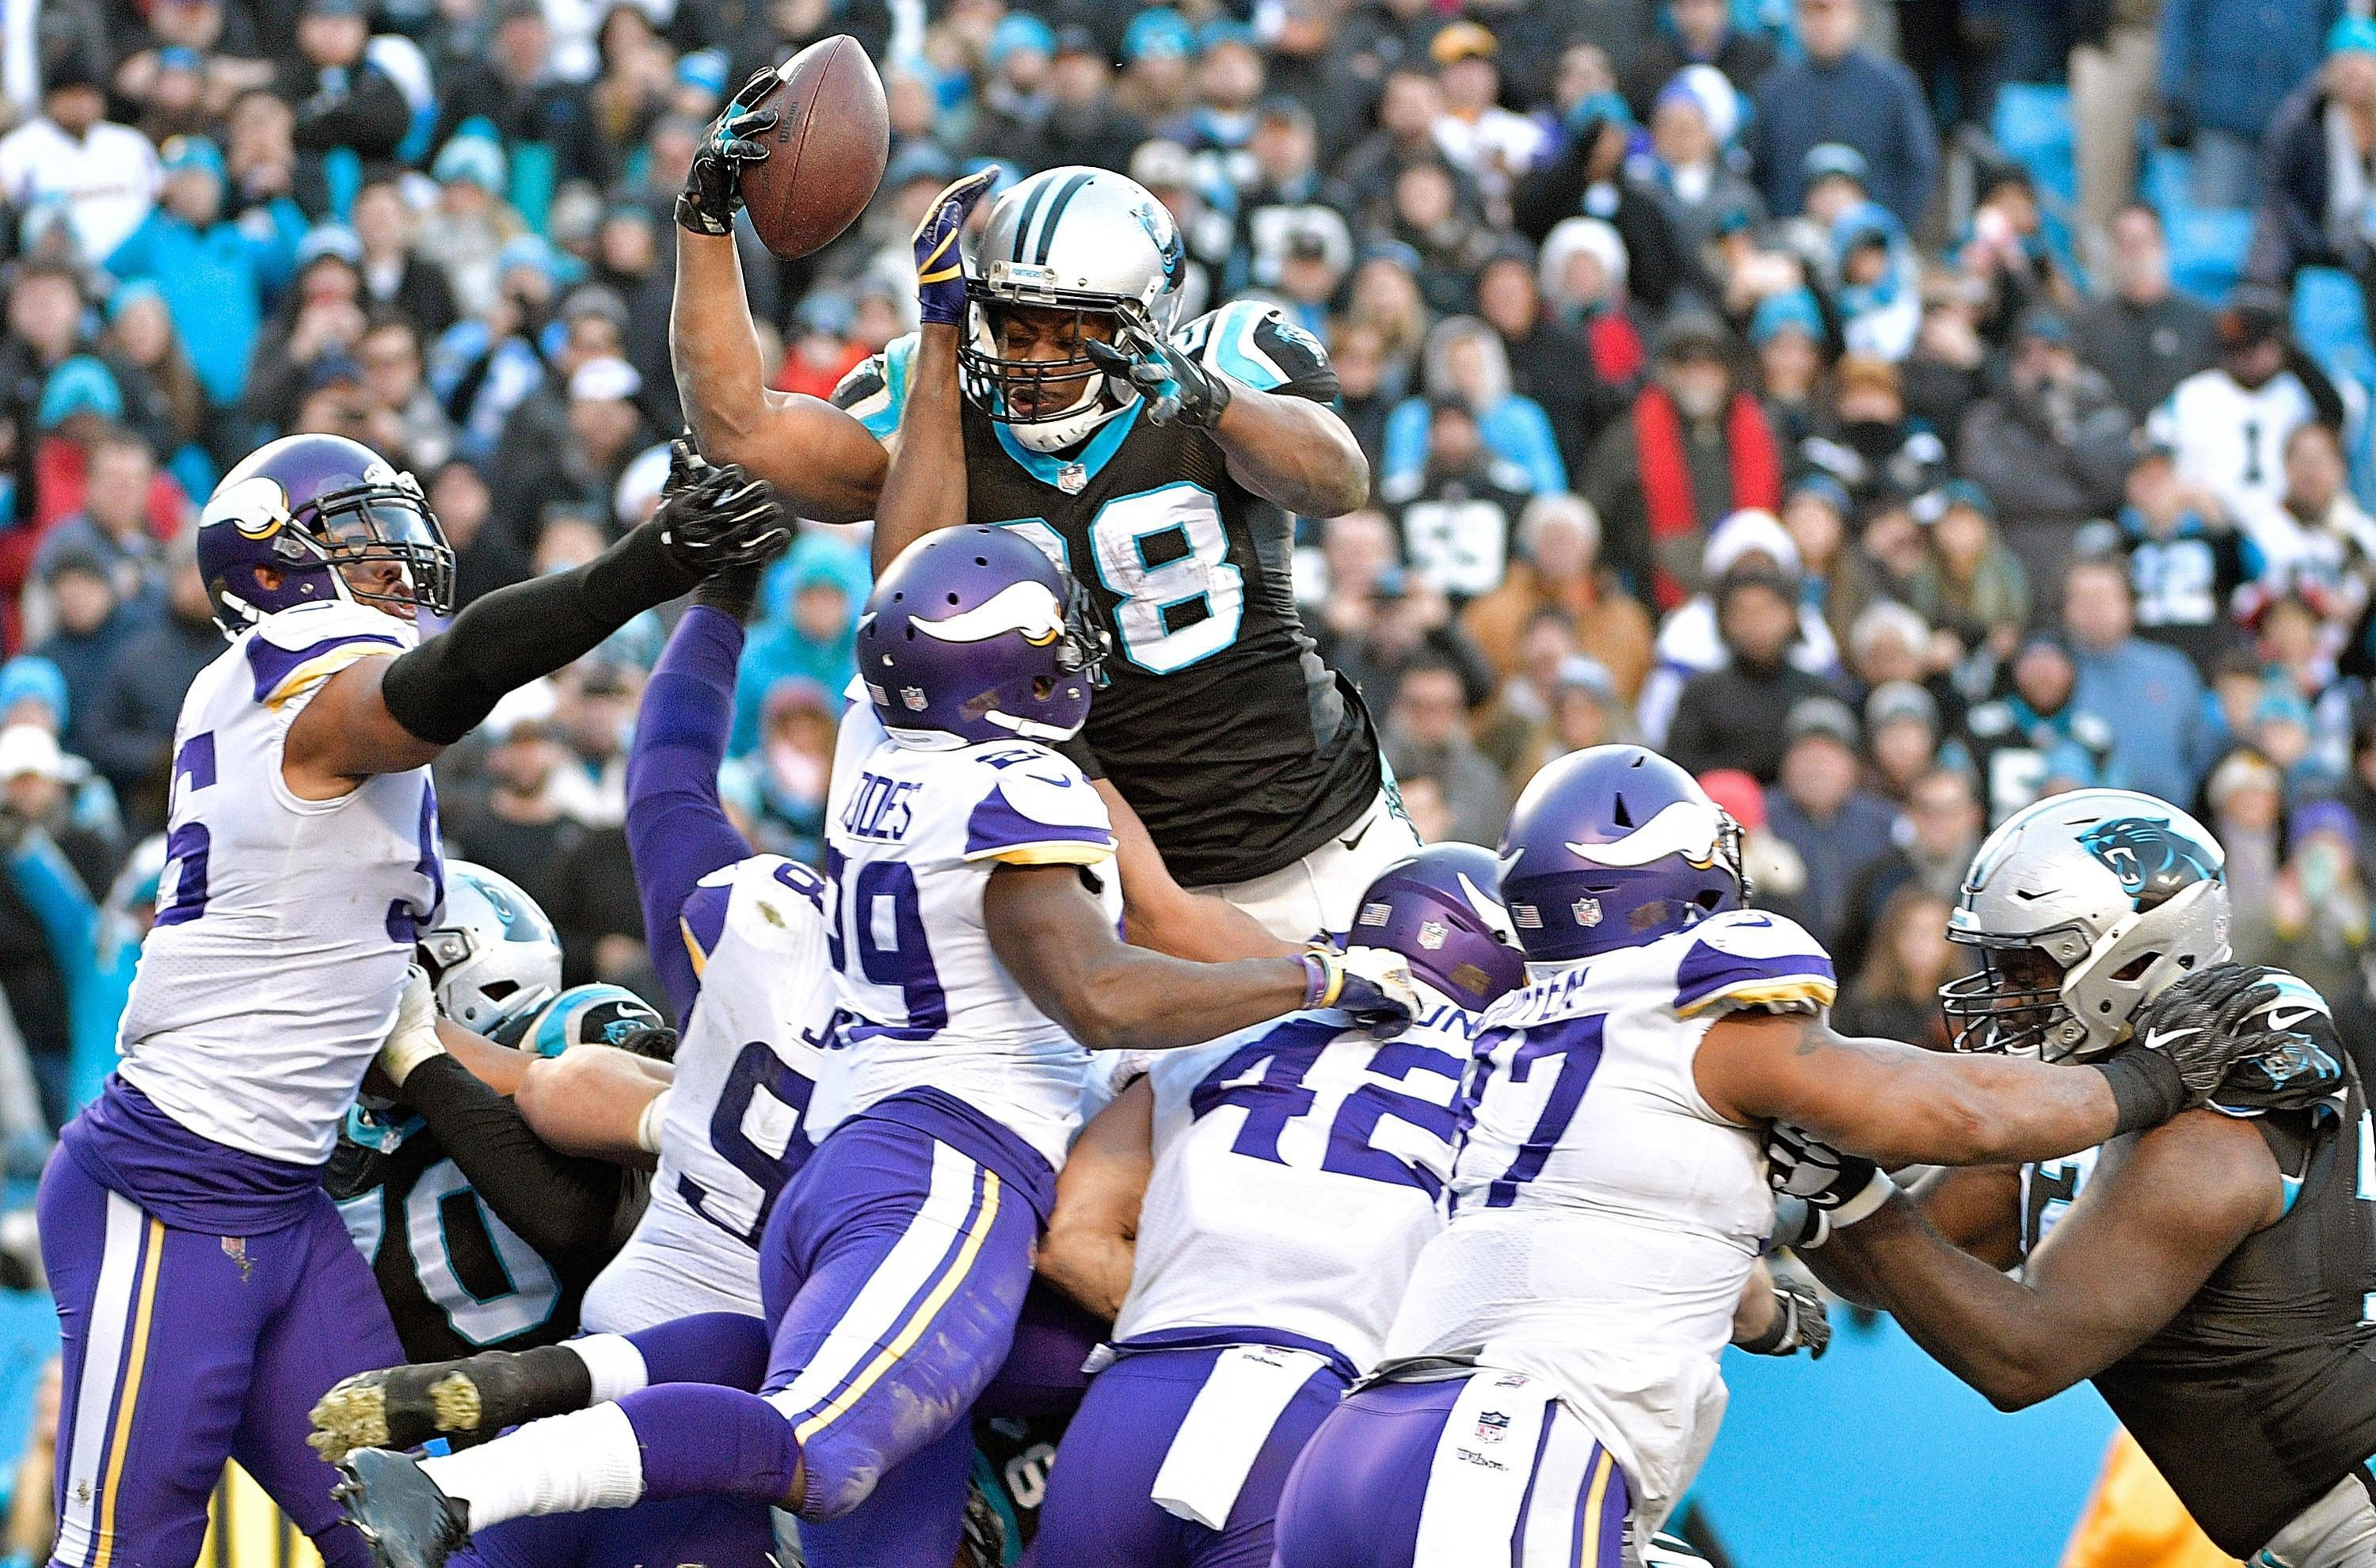 Jonathan Stewart dives in for a touchdown - worth six points